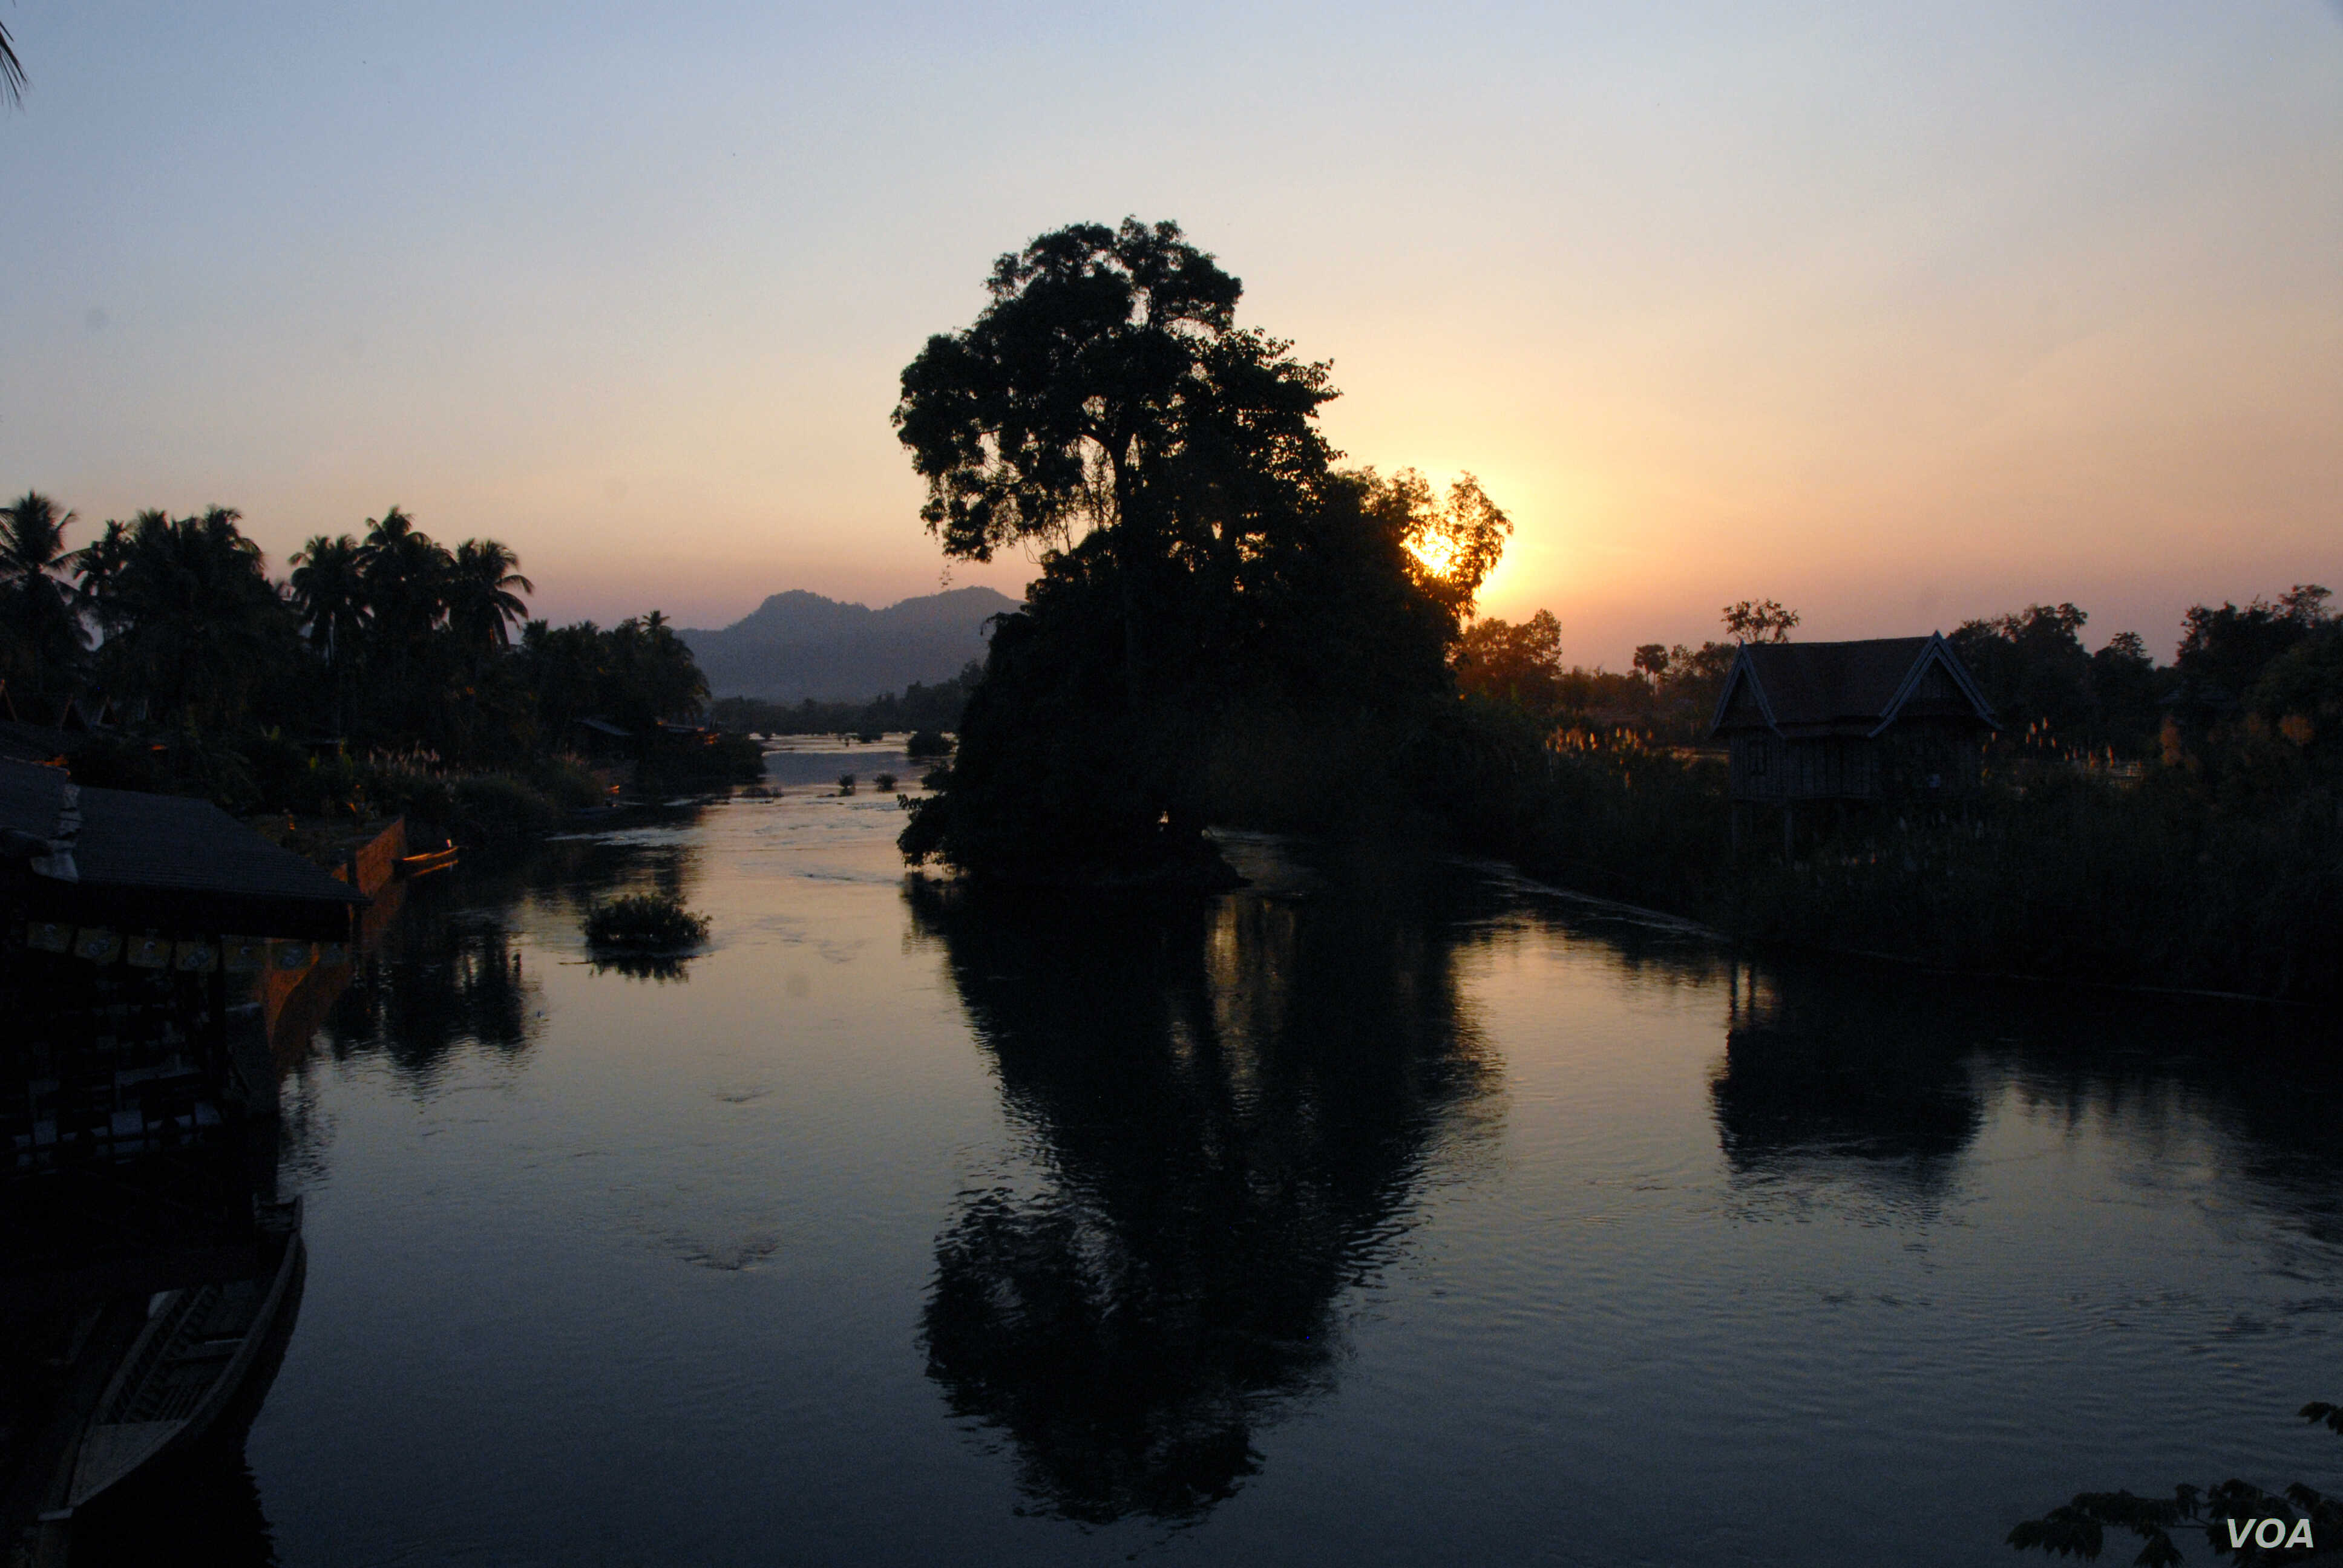 Sunset over the Mekong River from Don Khone where many locals fear they might be displaced if the dam at nearby Don Sahong goes ahead. (Luke Hunt for VOA News)